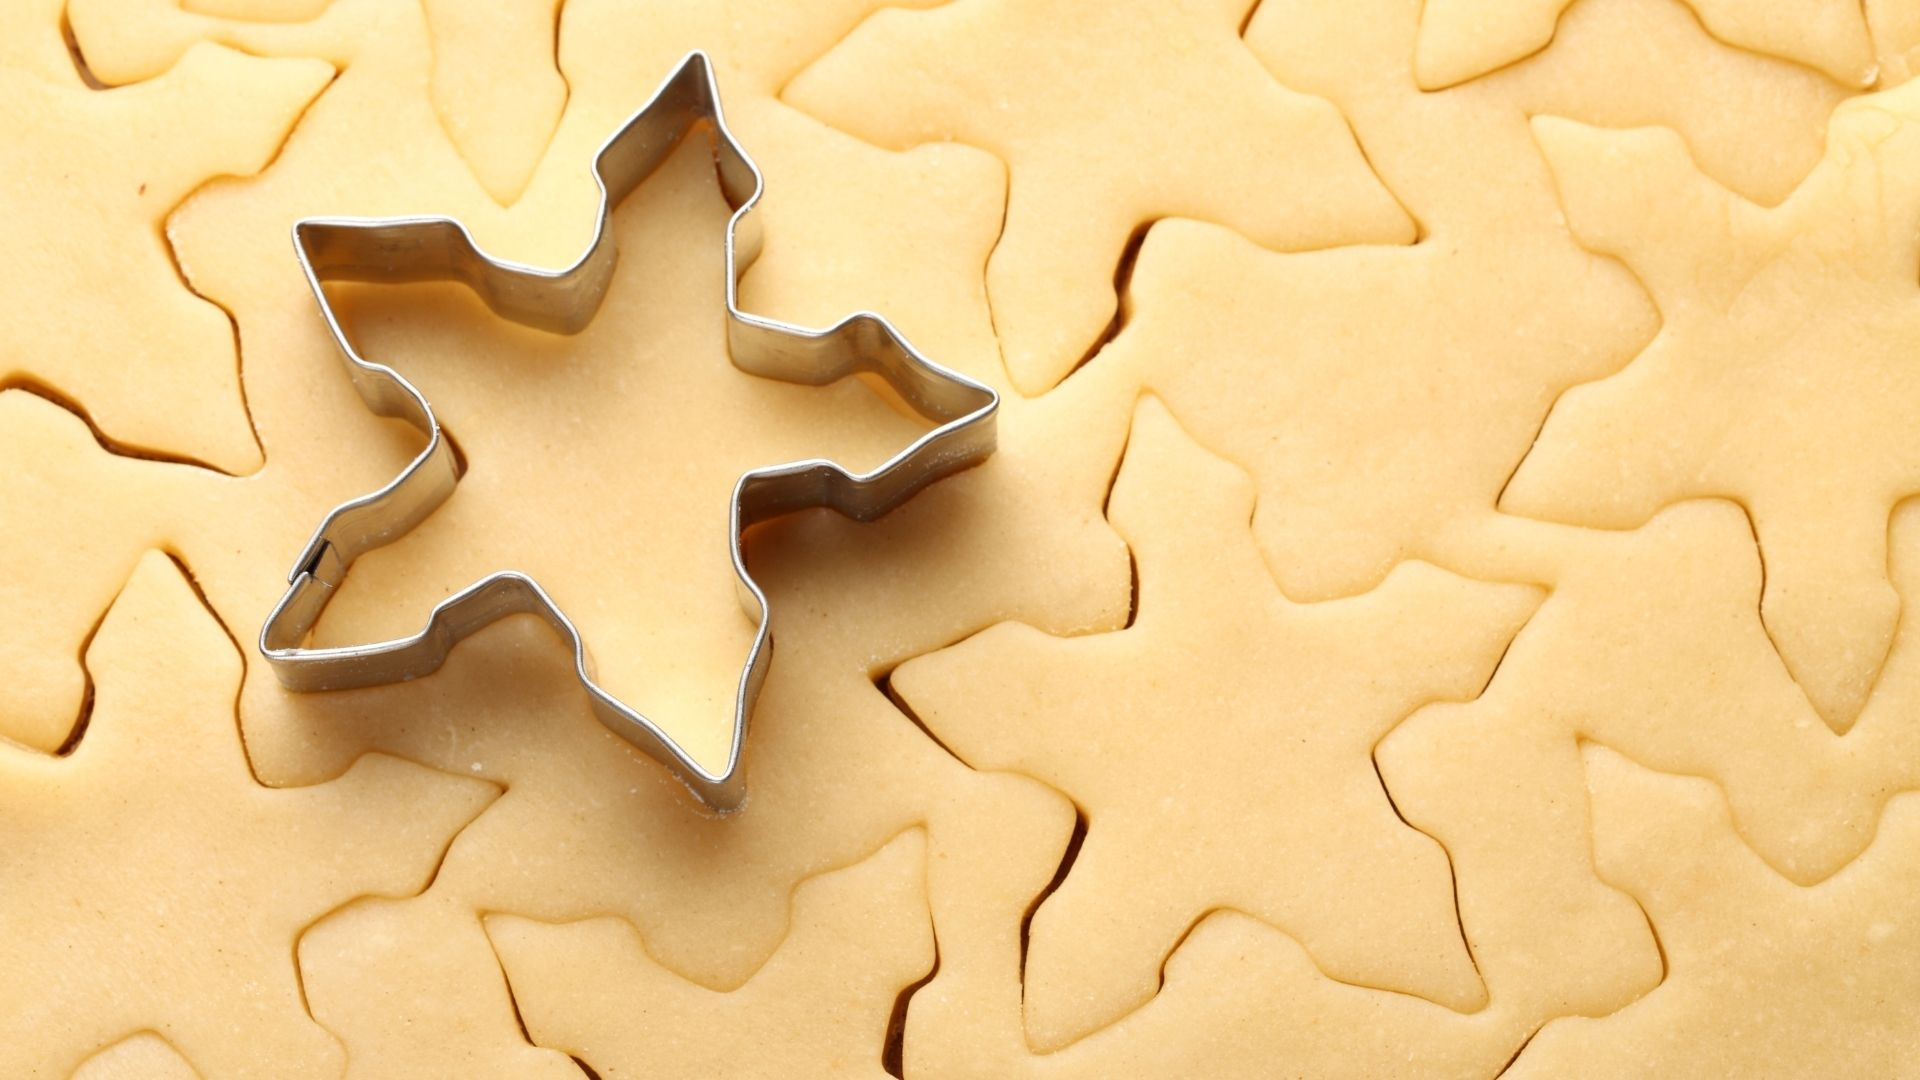 Cookie cutter repeating the same shape